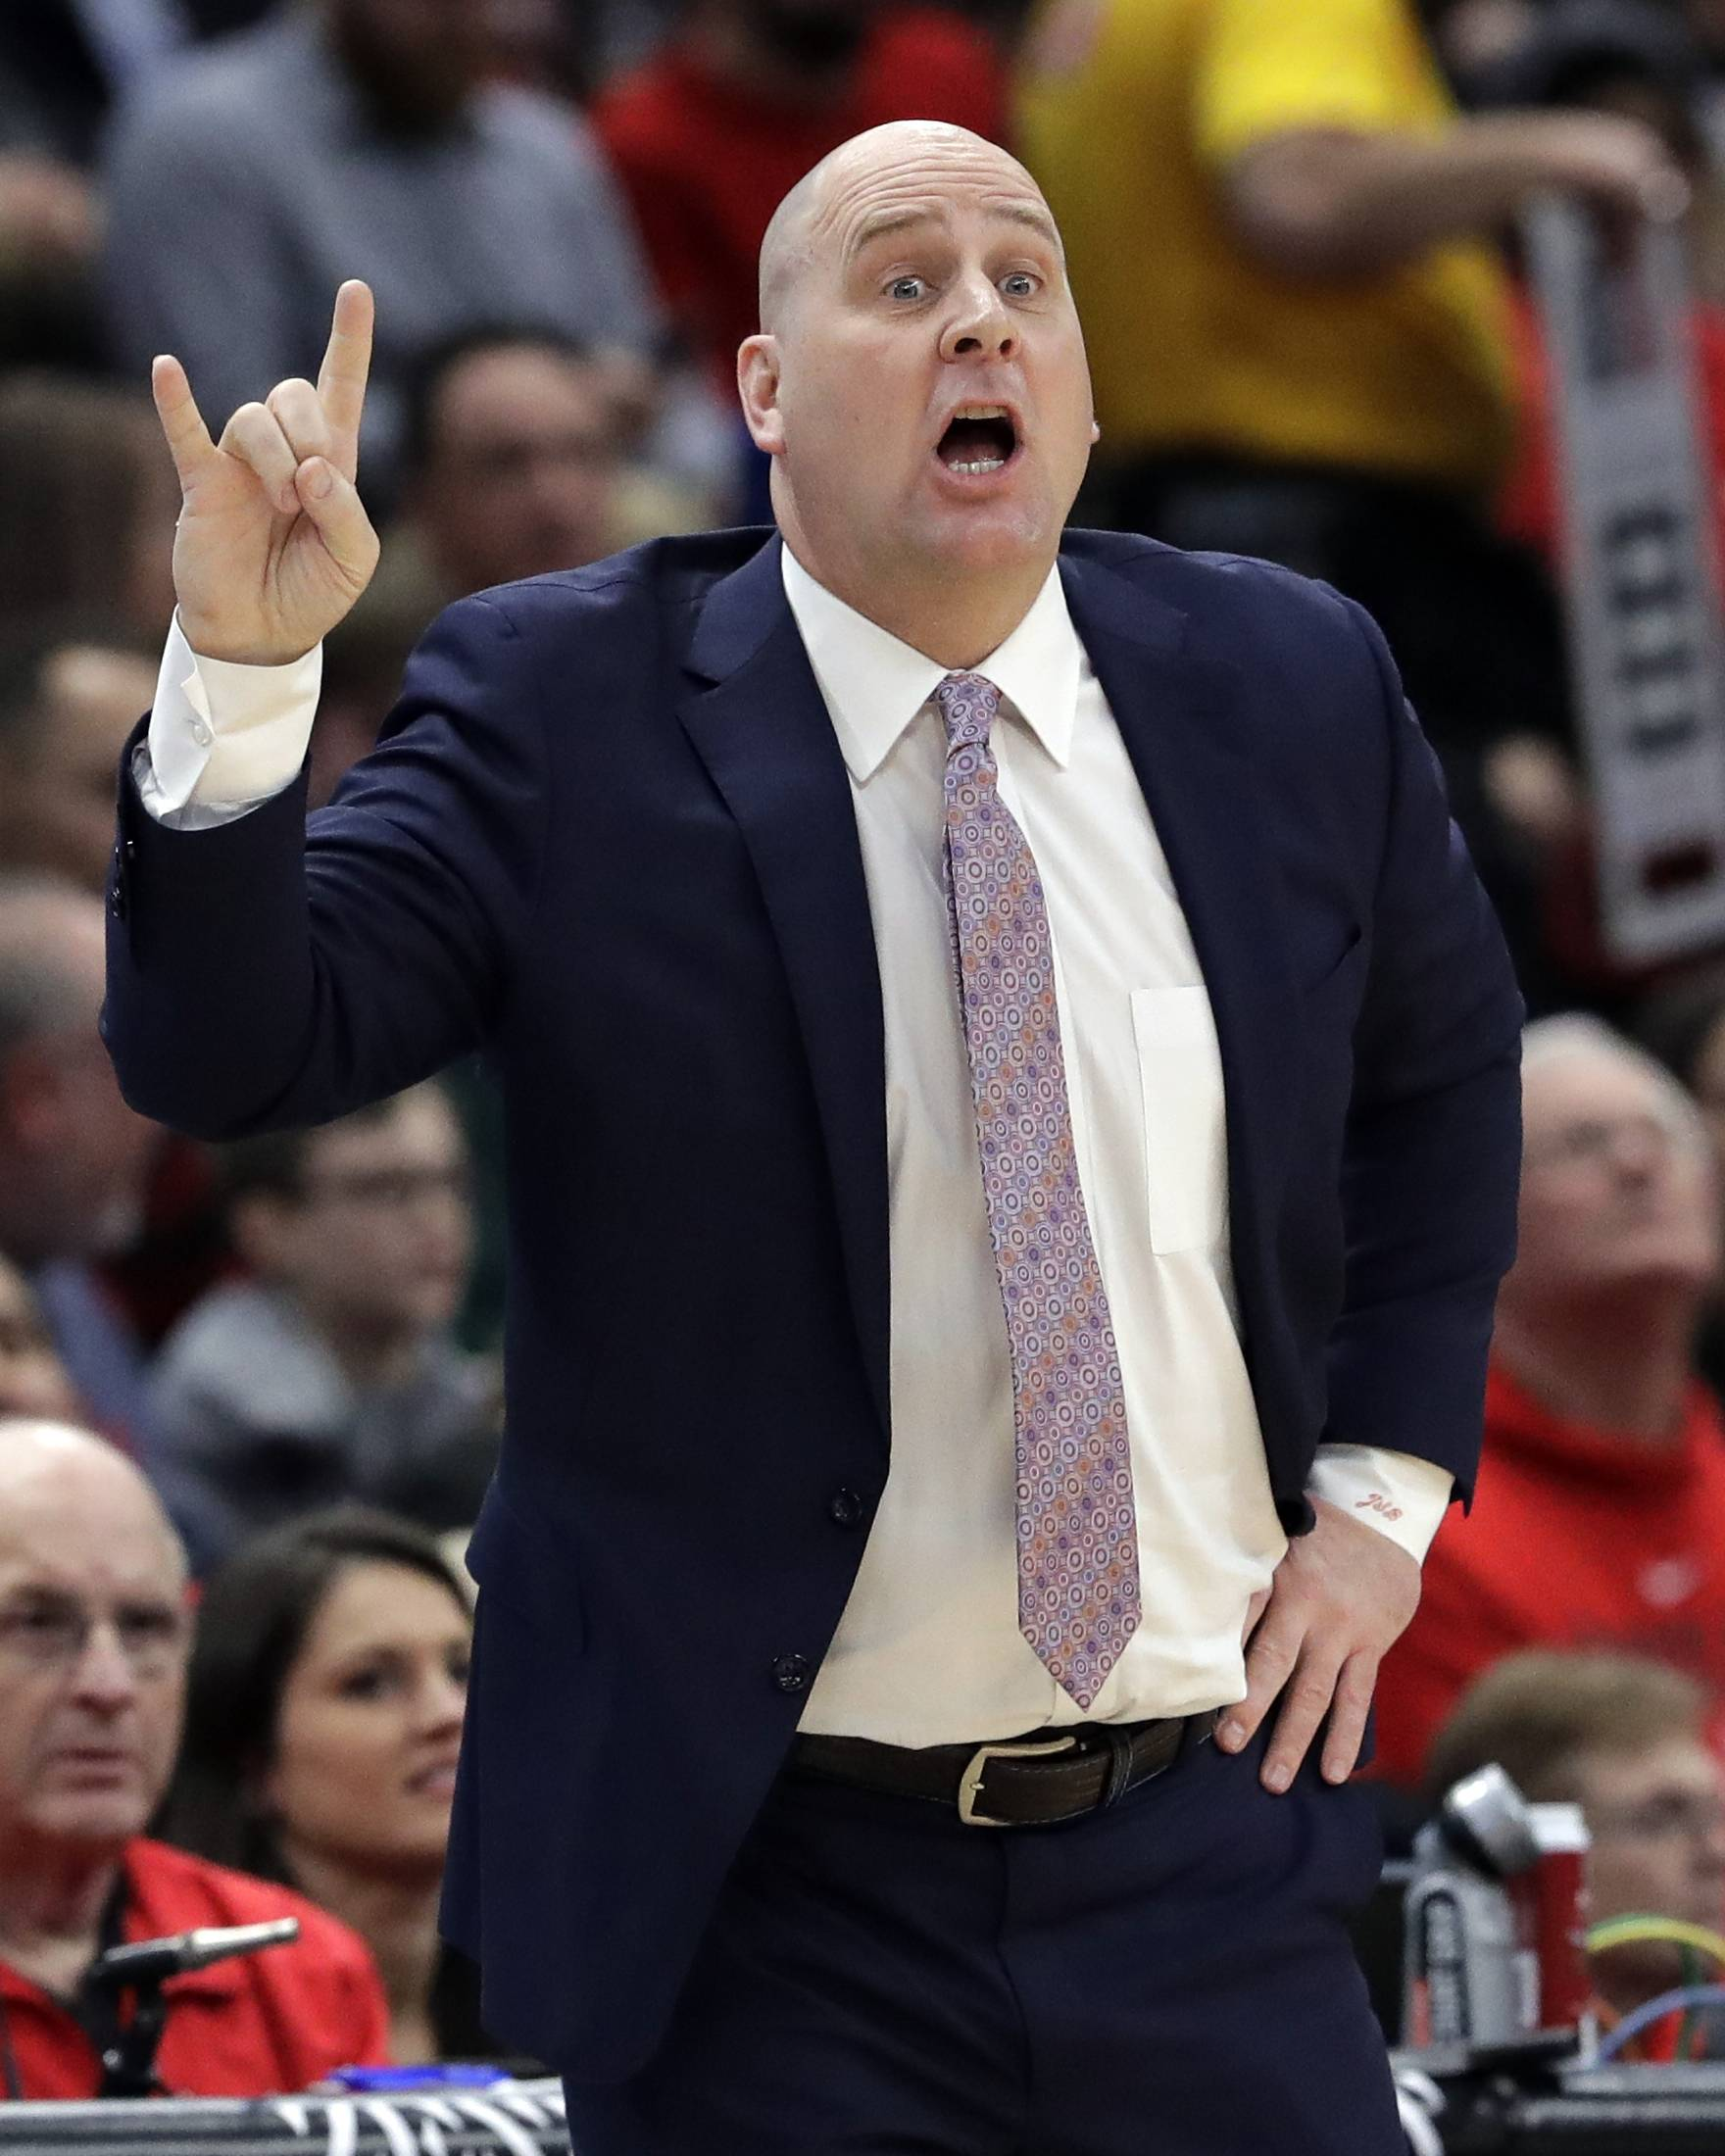 Bulls make it official, sign Boylen to contract extension